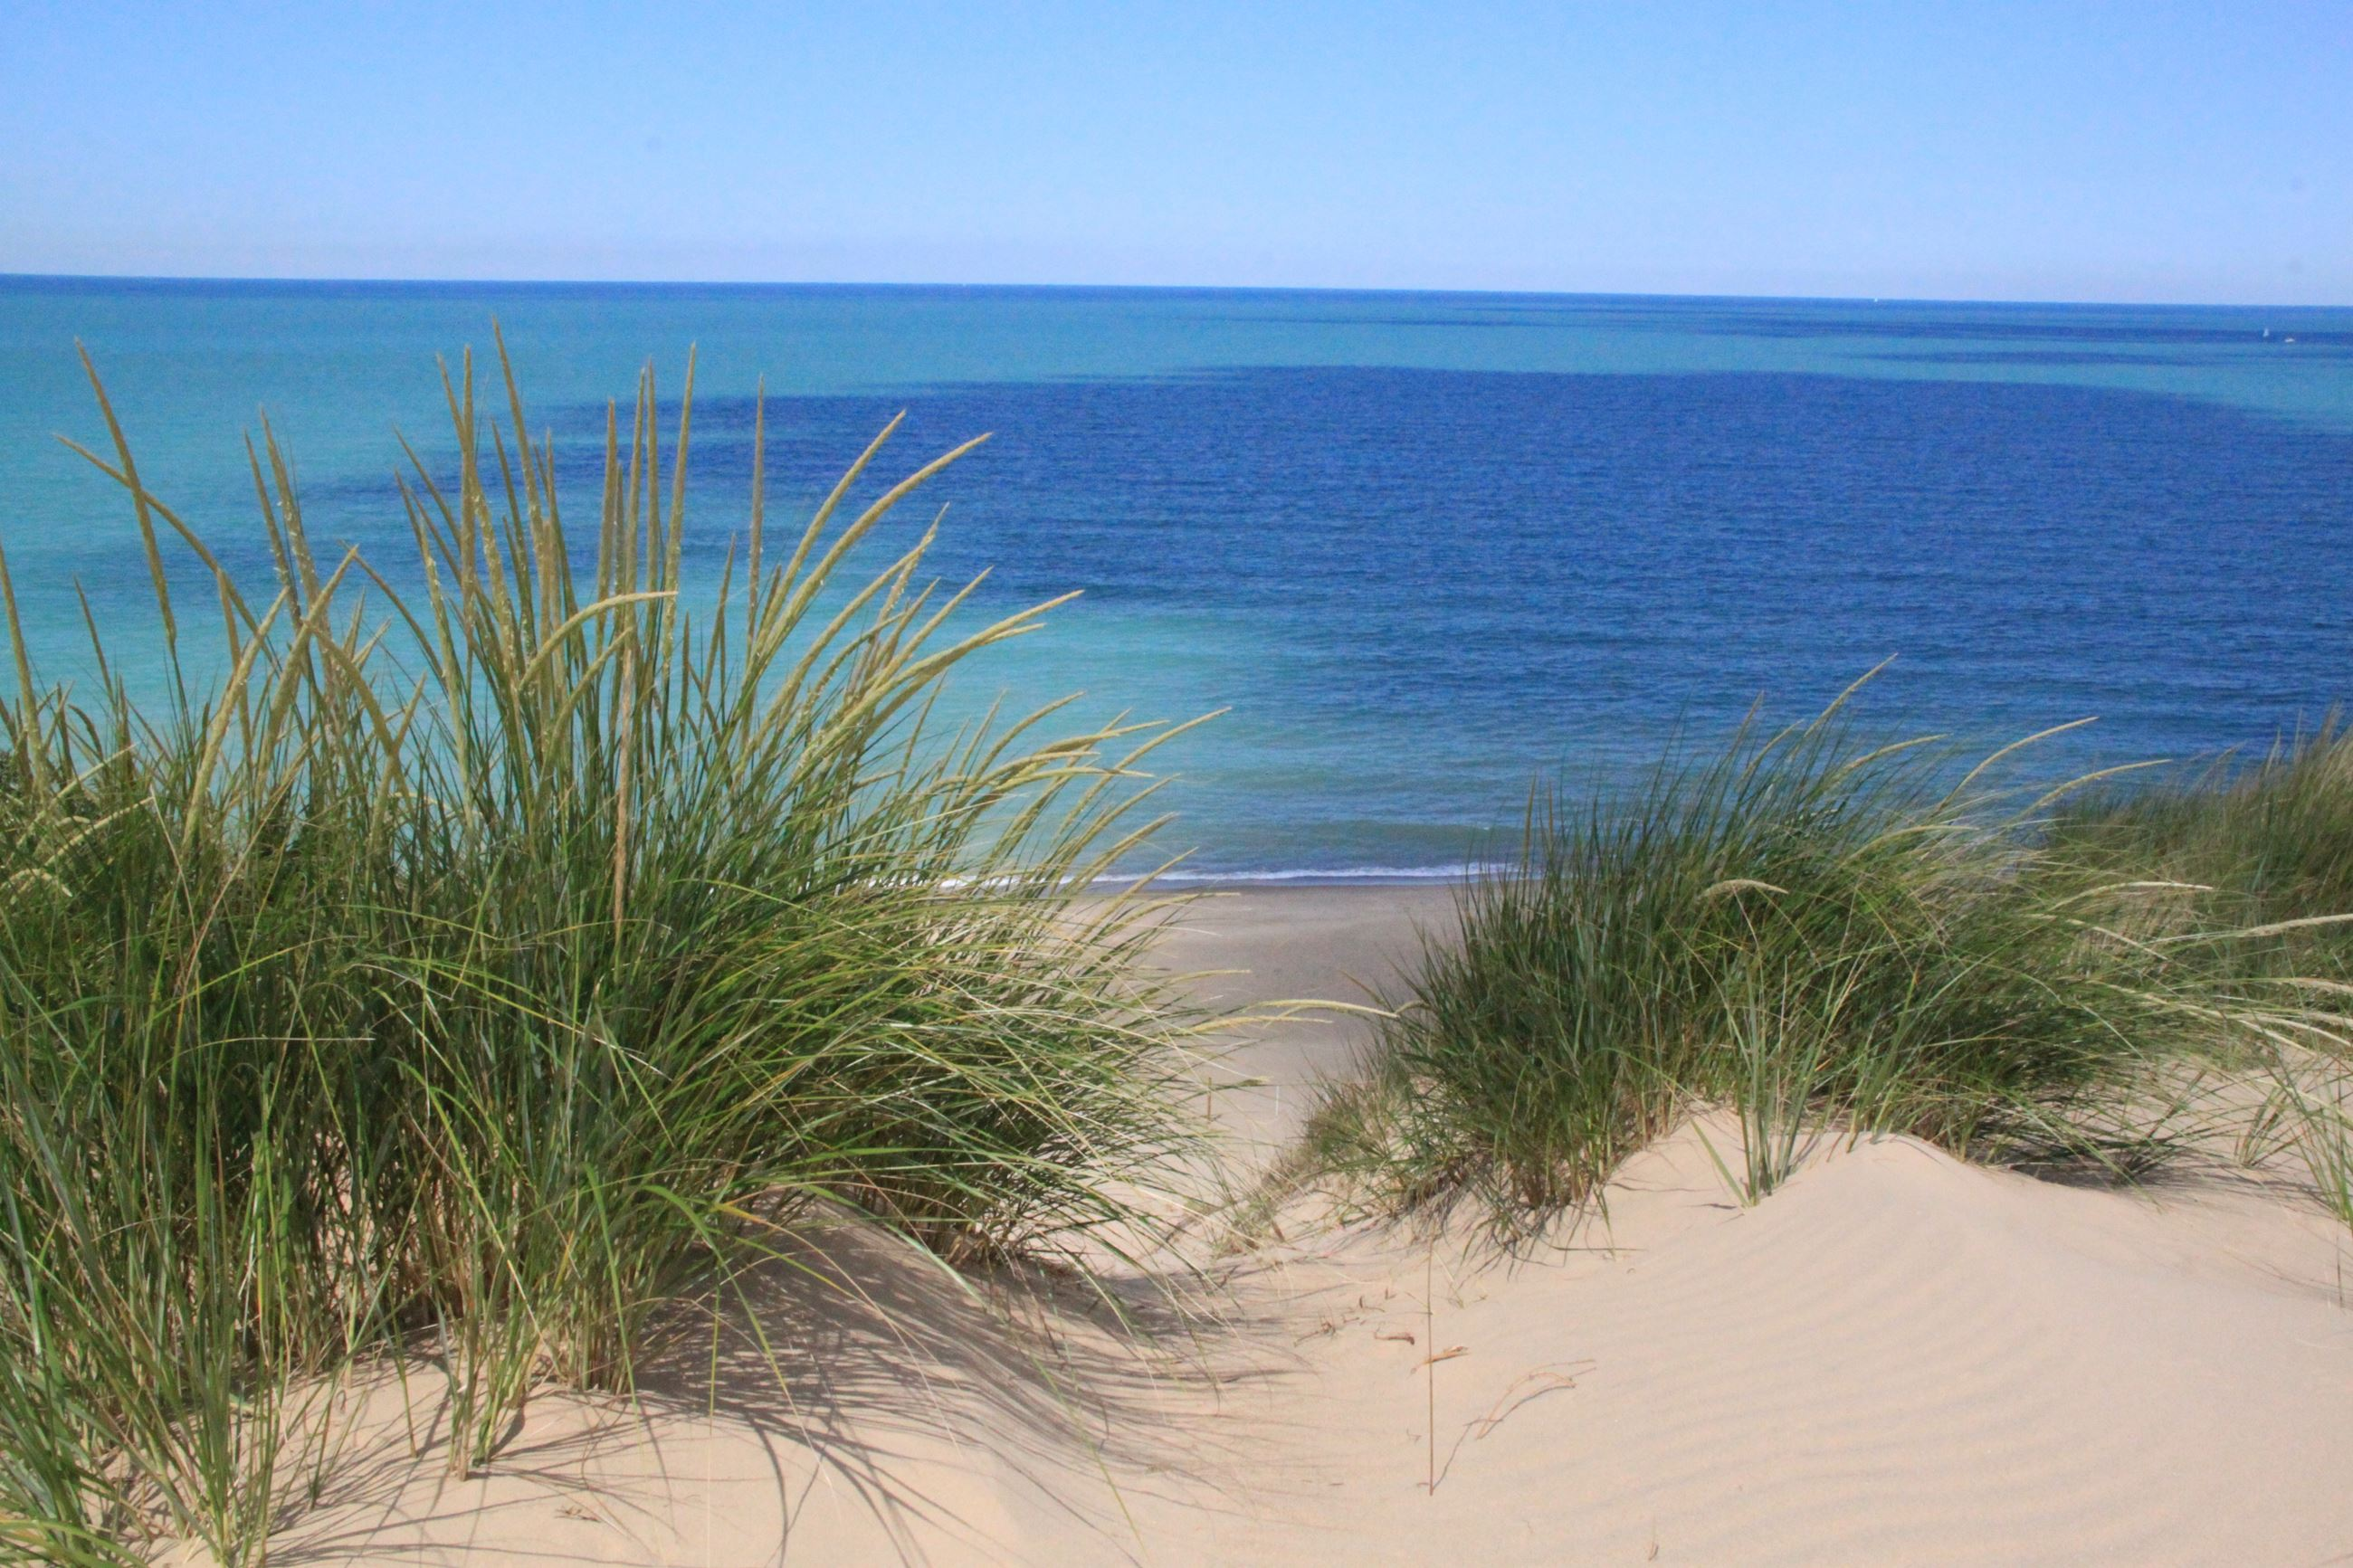 Lake Michigan provided by Indiana Dunes Tourism